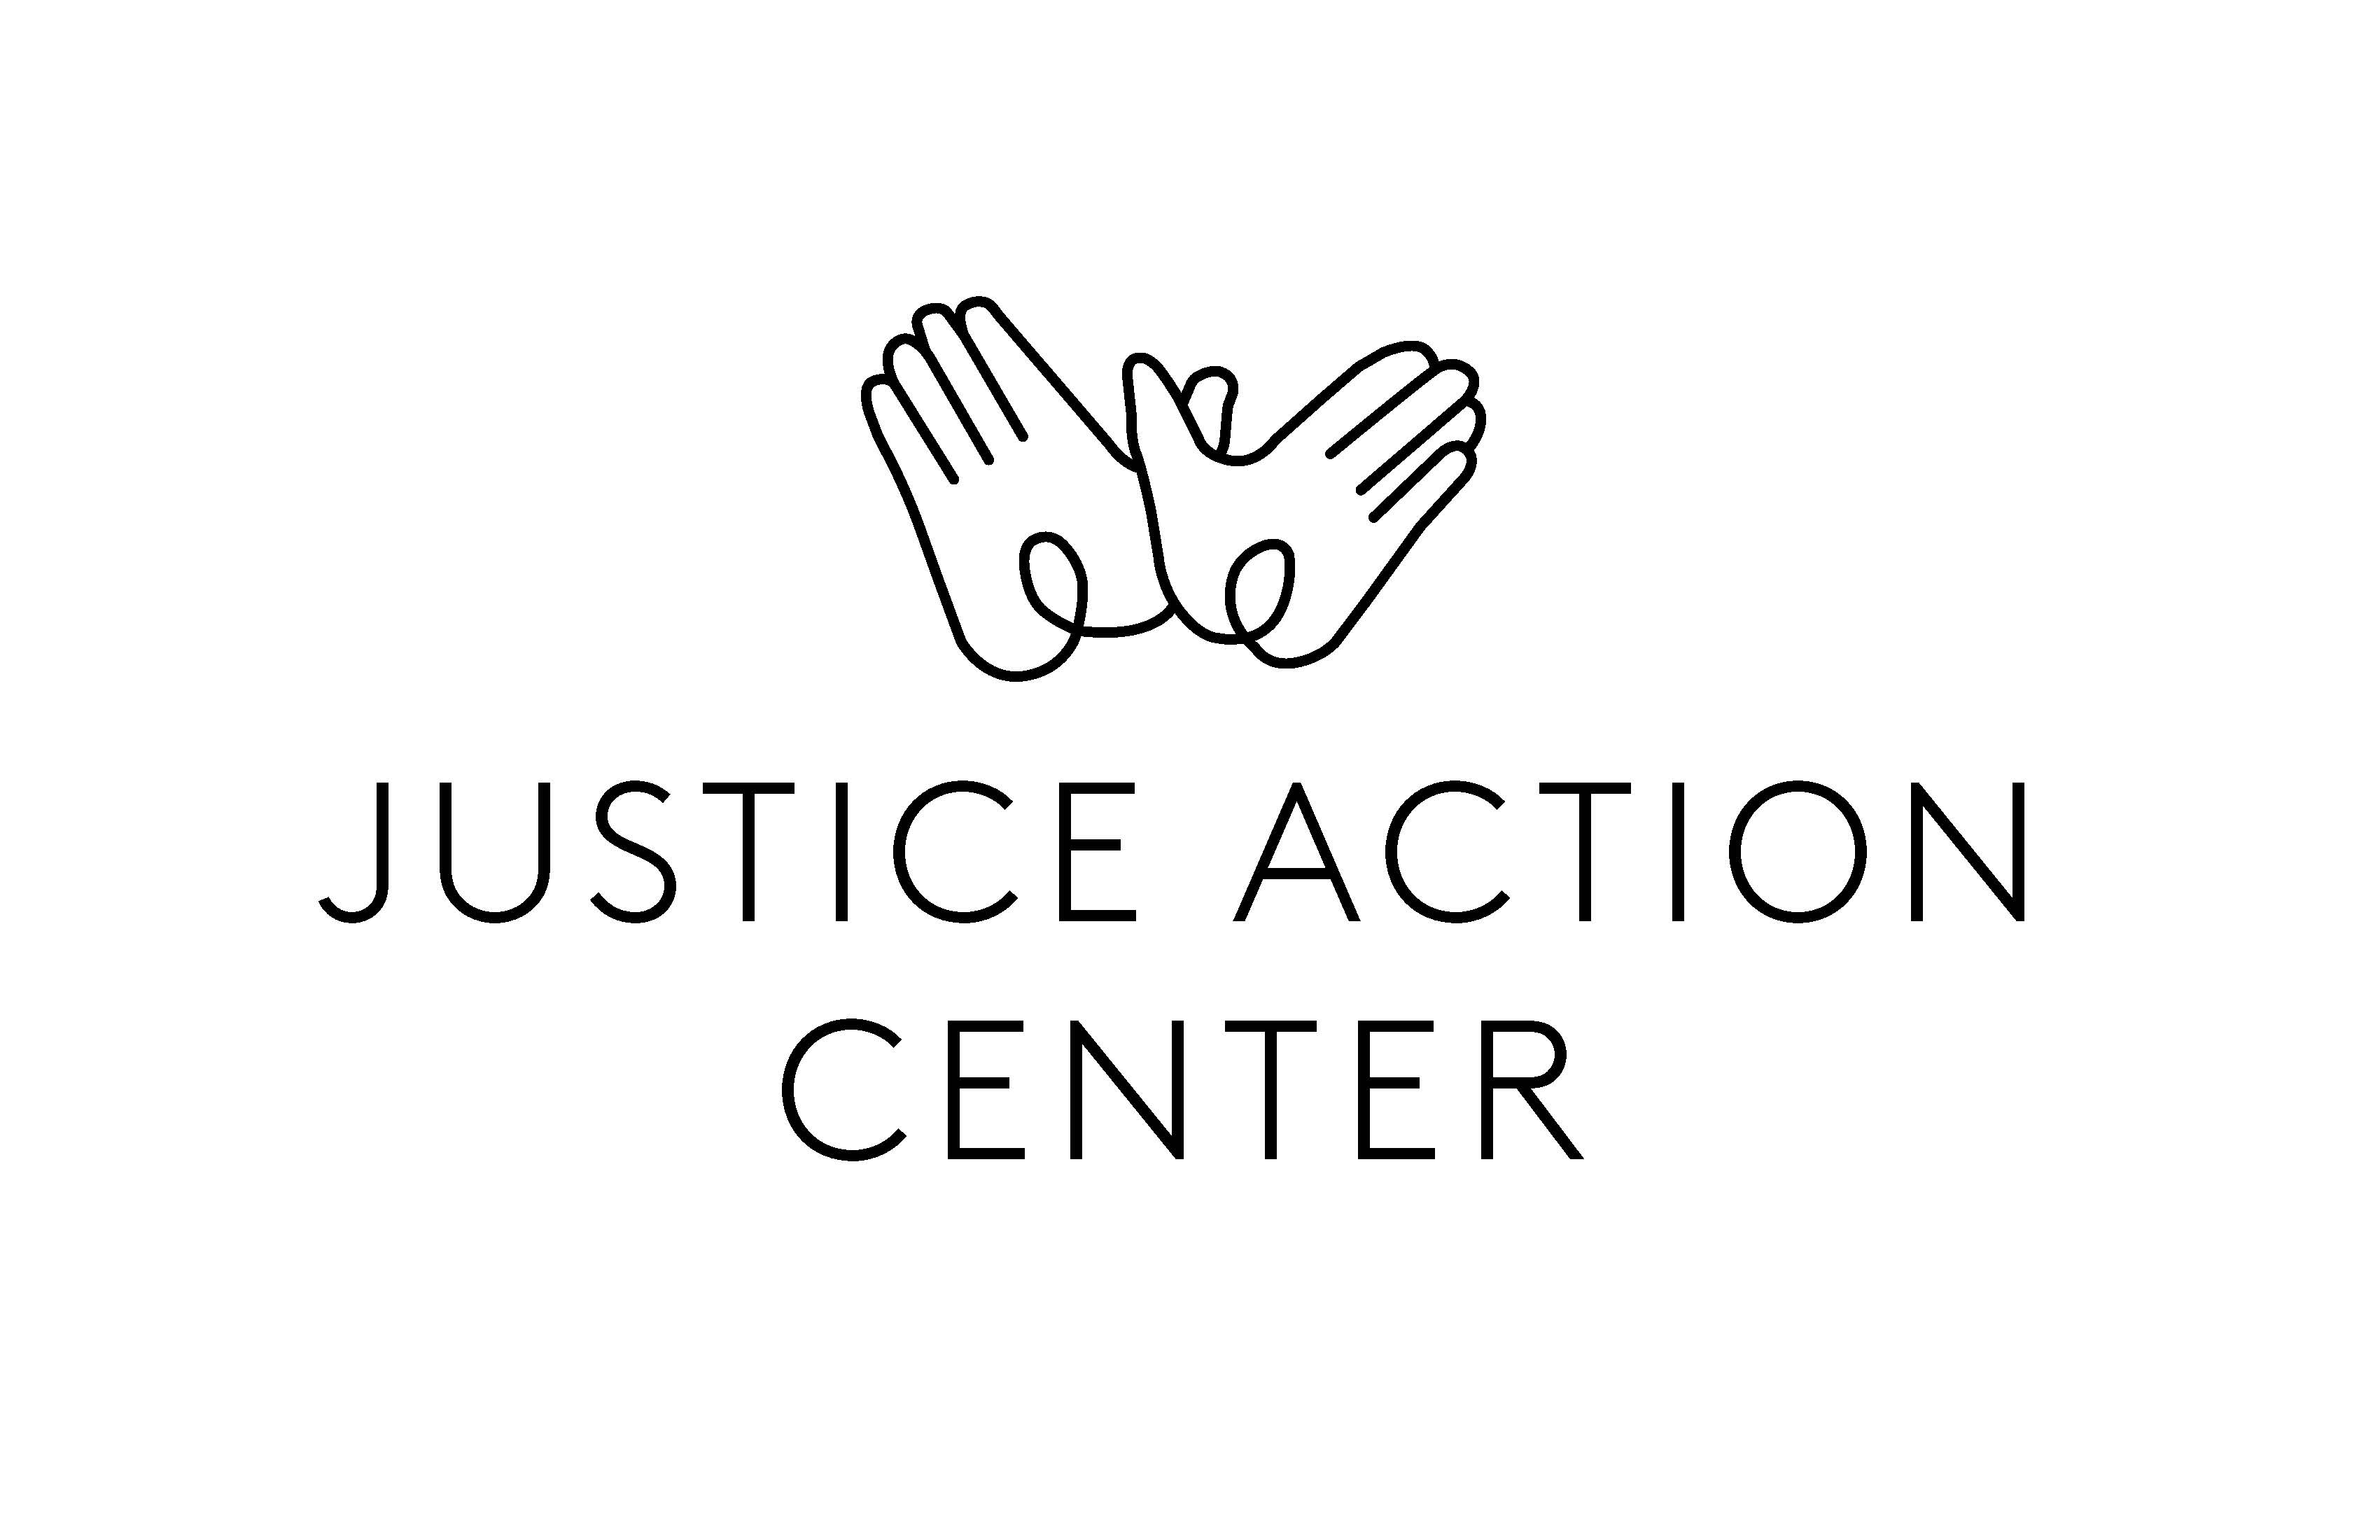 Justice Action Center logo